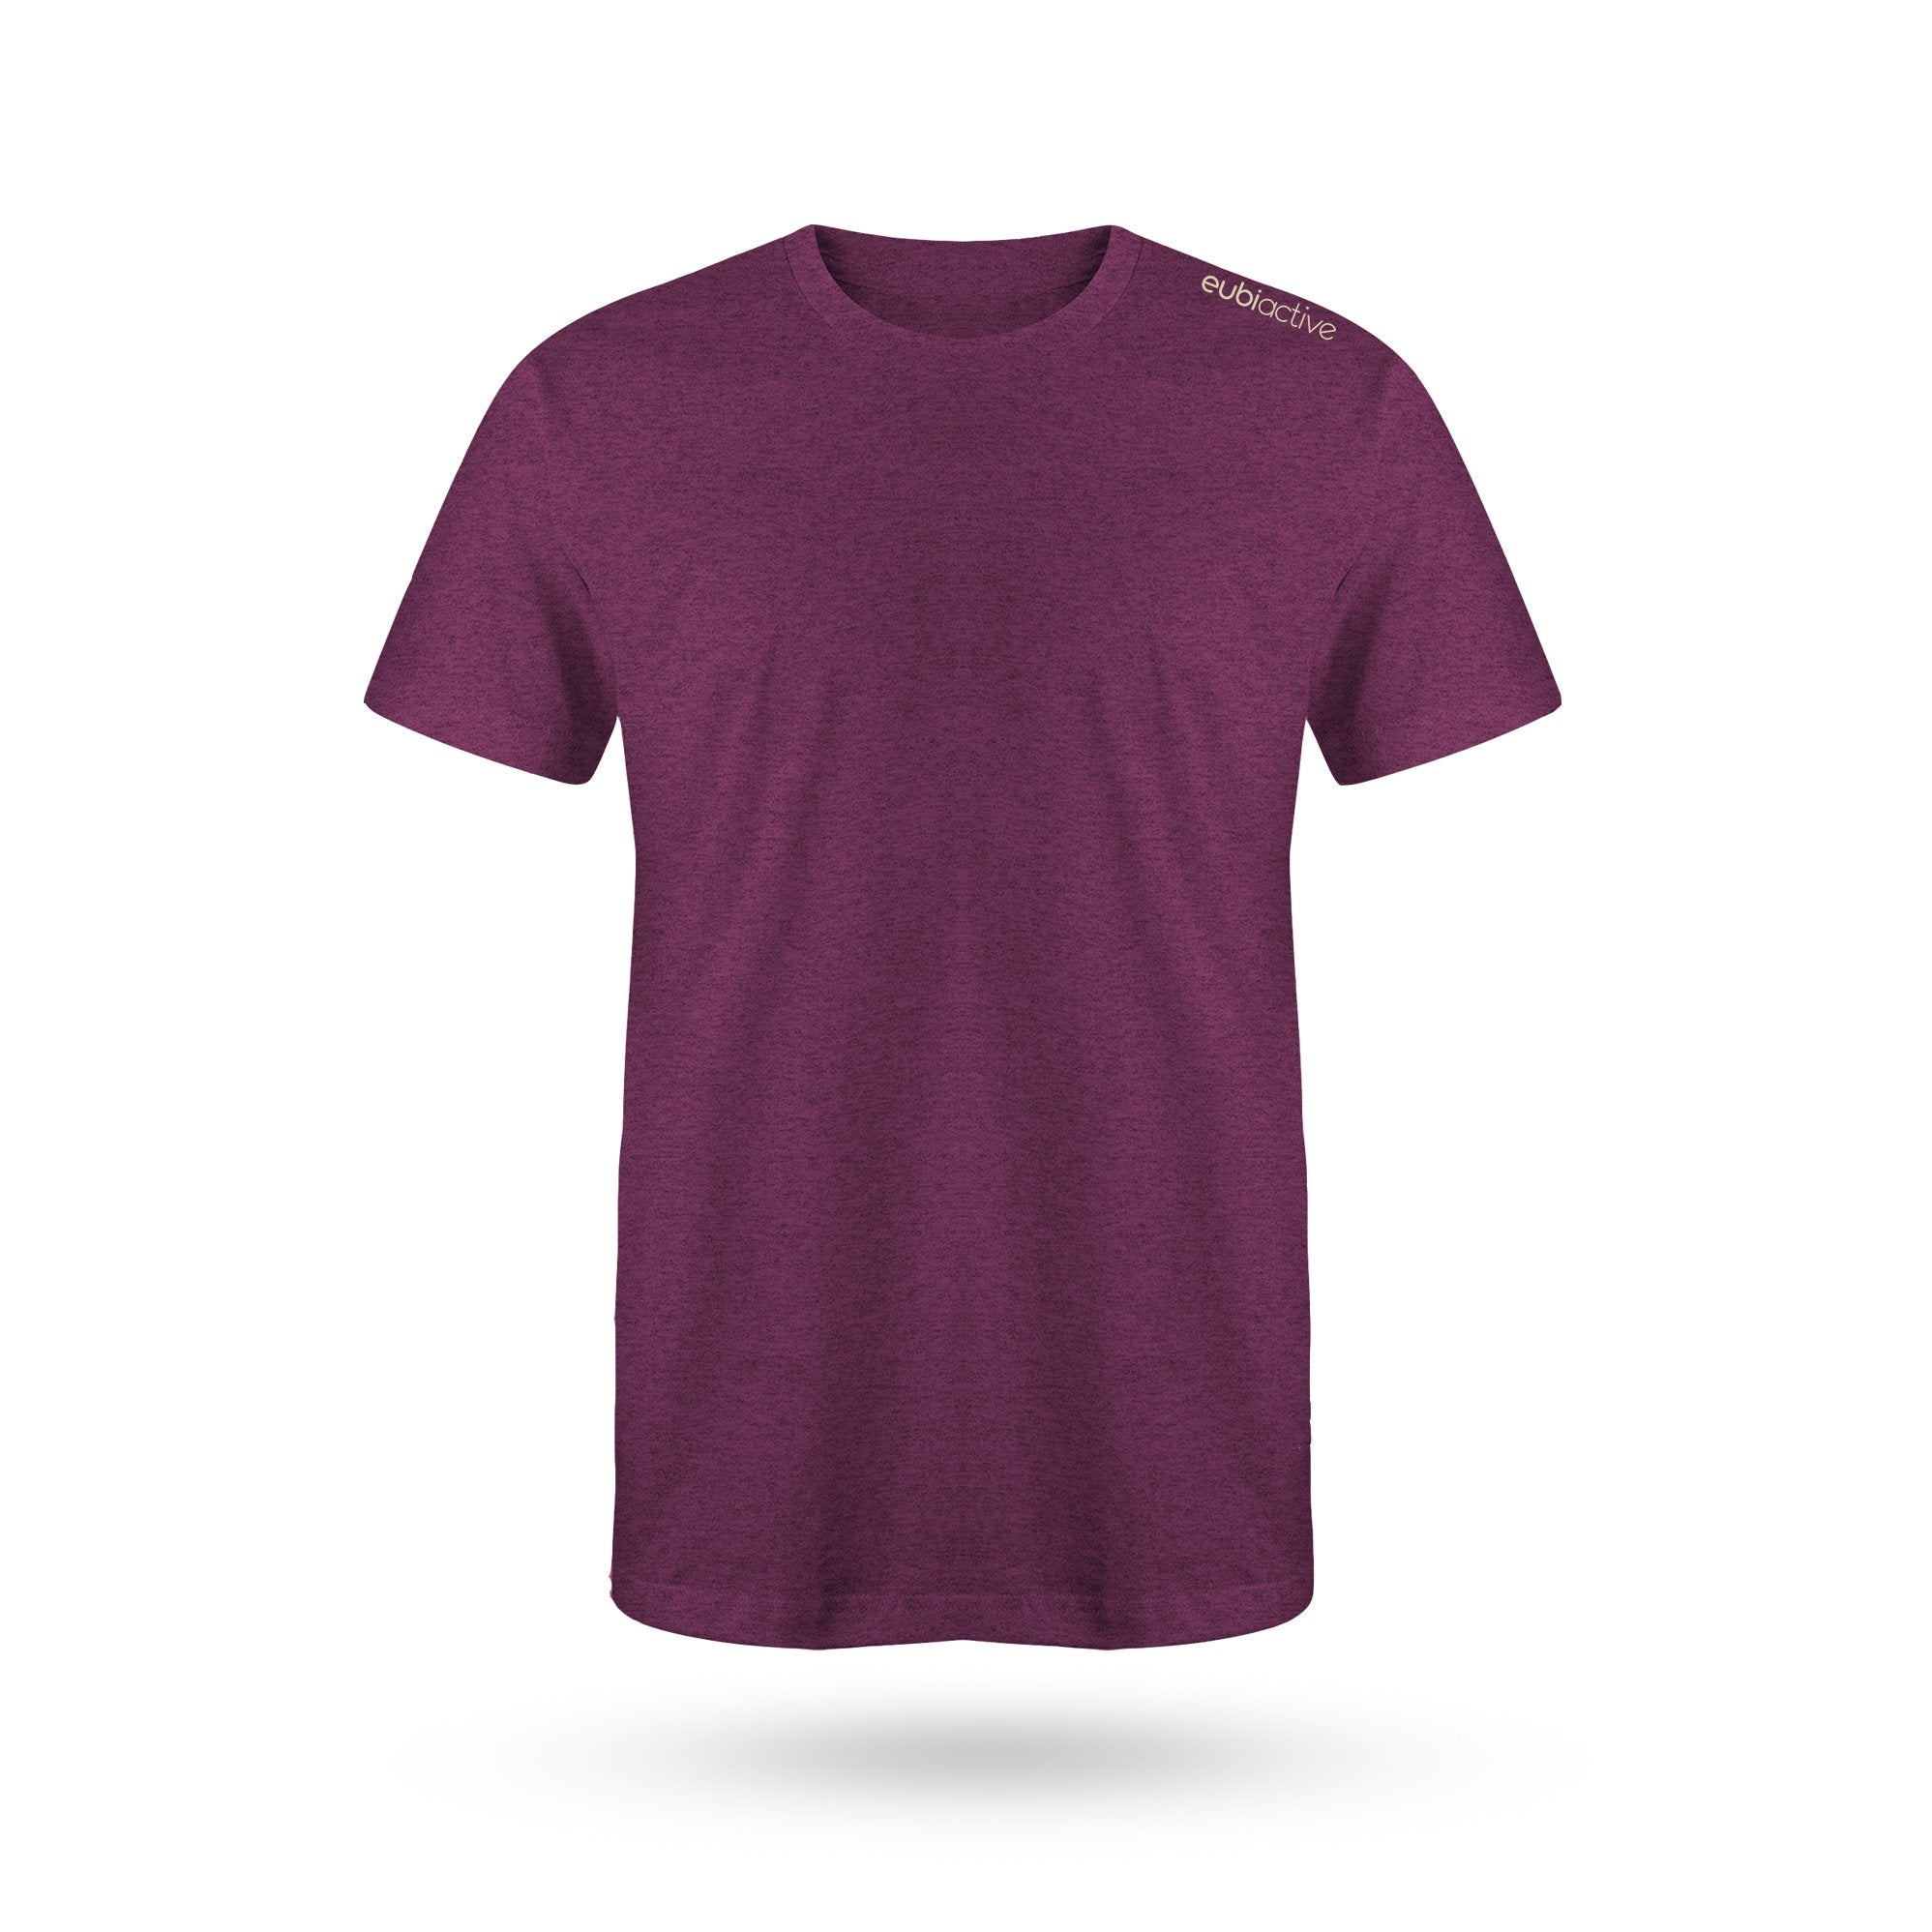 Featherlite Active Tee - Burgundy